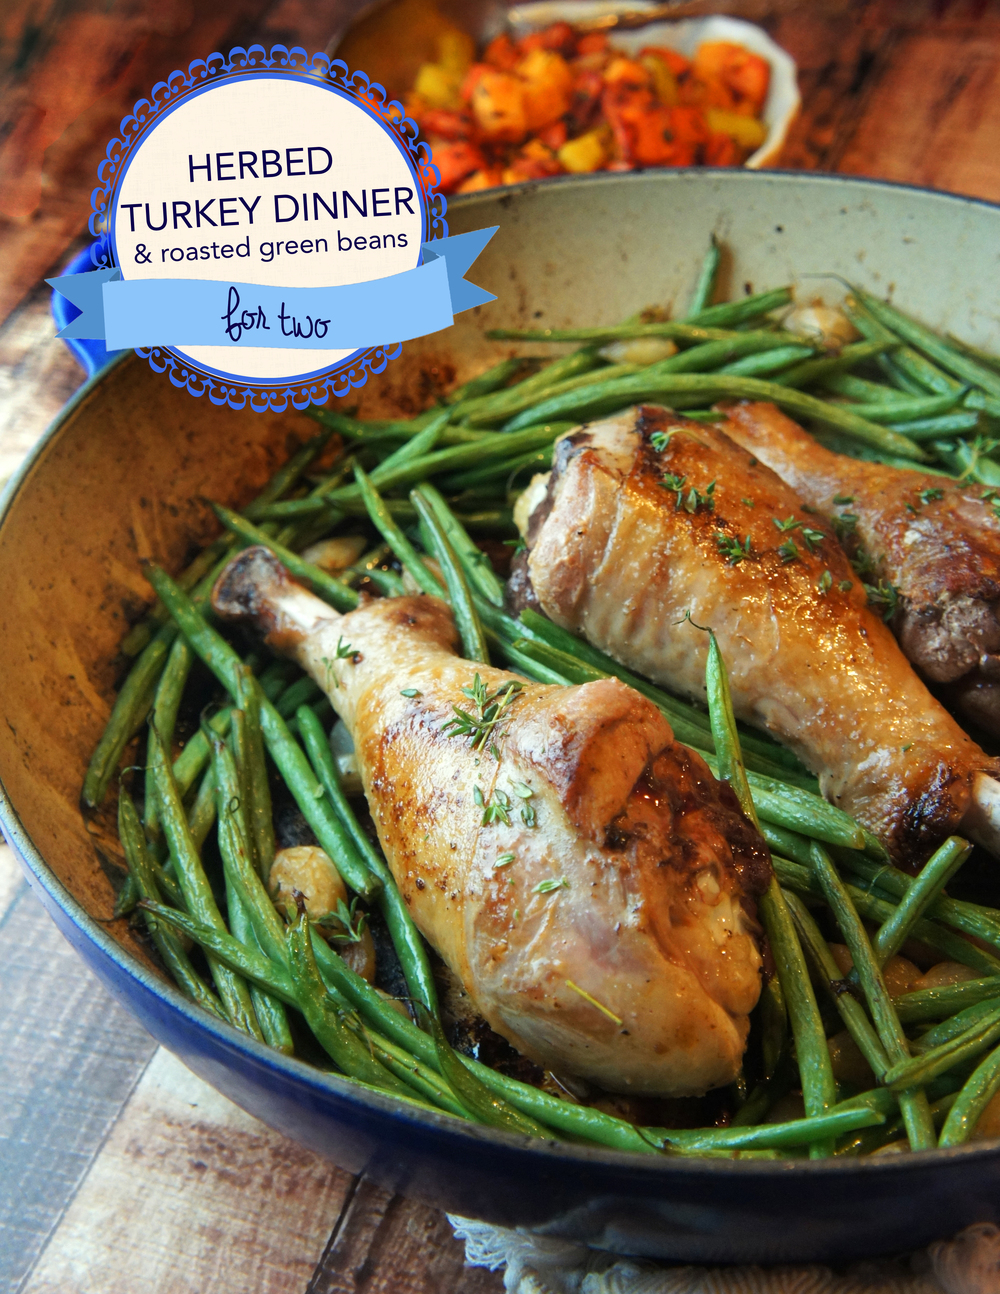 Herbed Turkey Dinner with Roasted Green Beans for Two (Paleo)